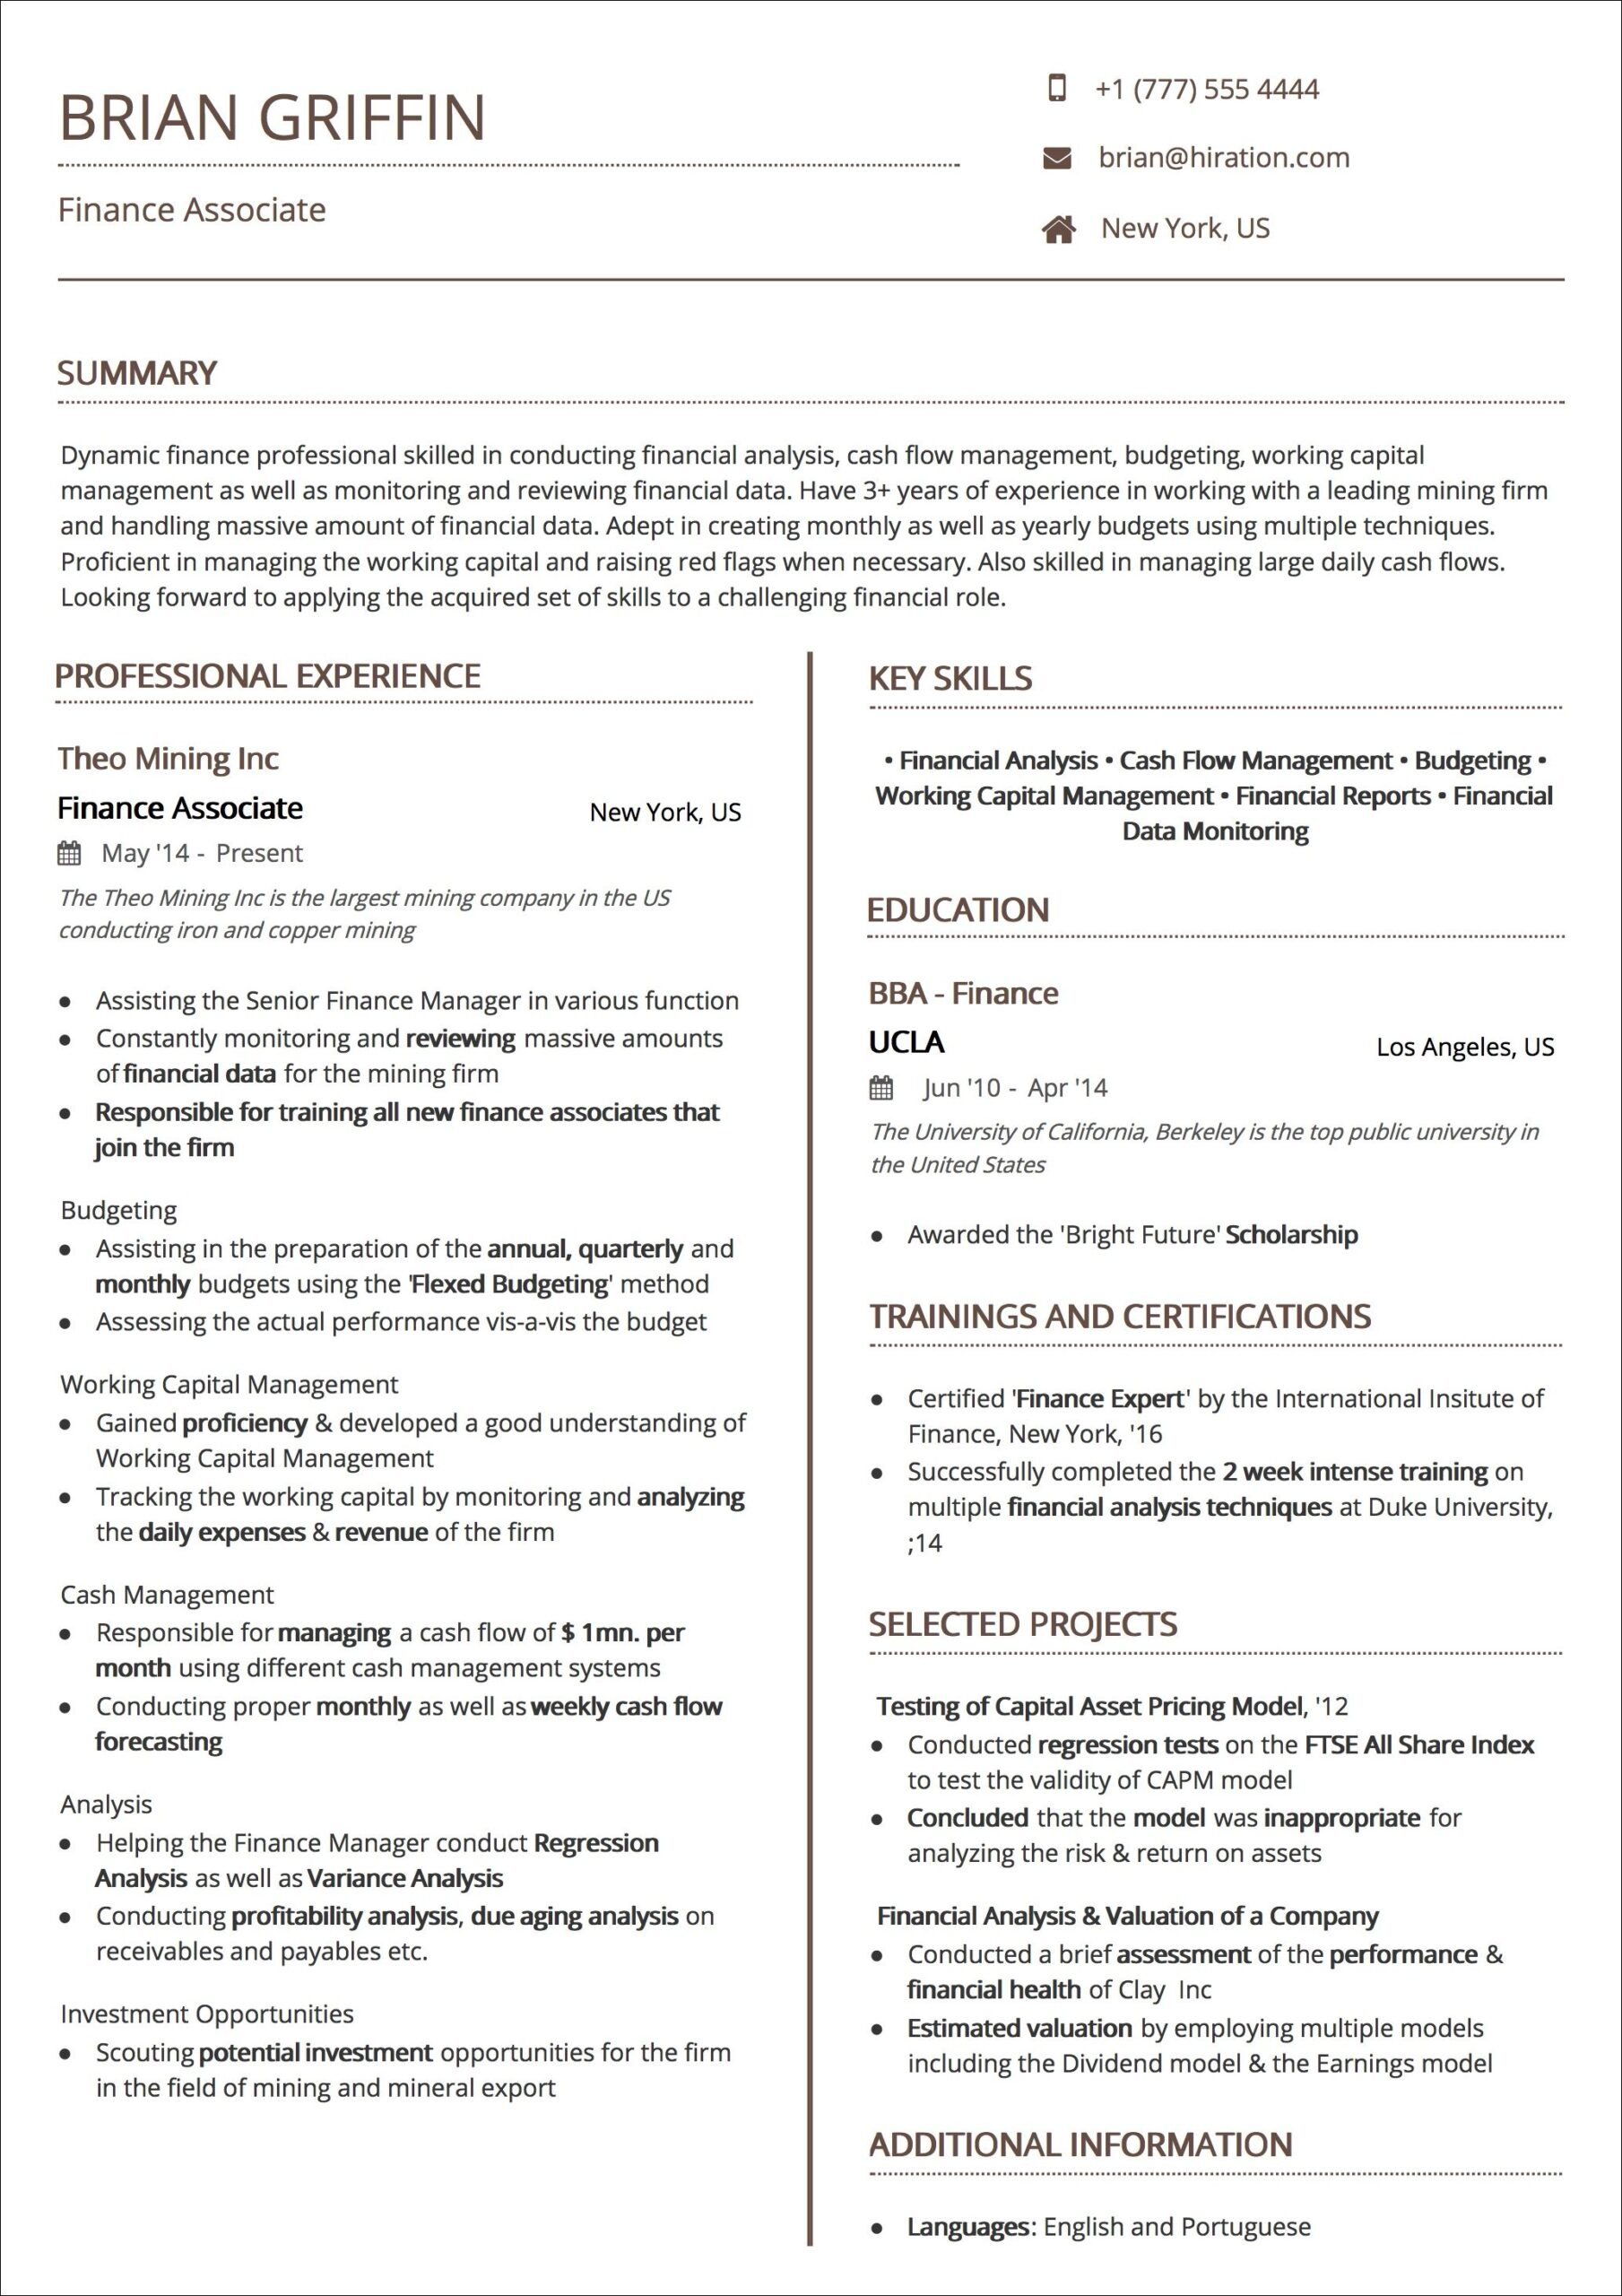 resume templates the guide to choosing best template format for ats uniform professional Resume Best Resume Format For Ats